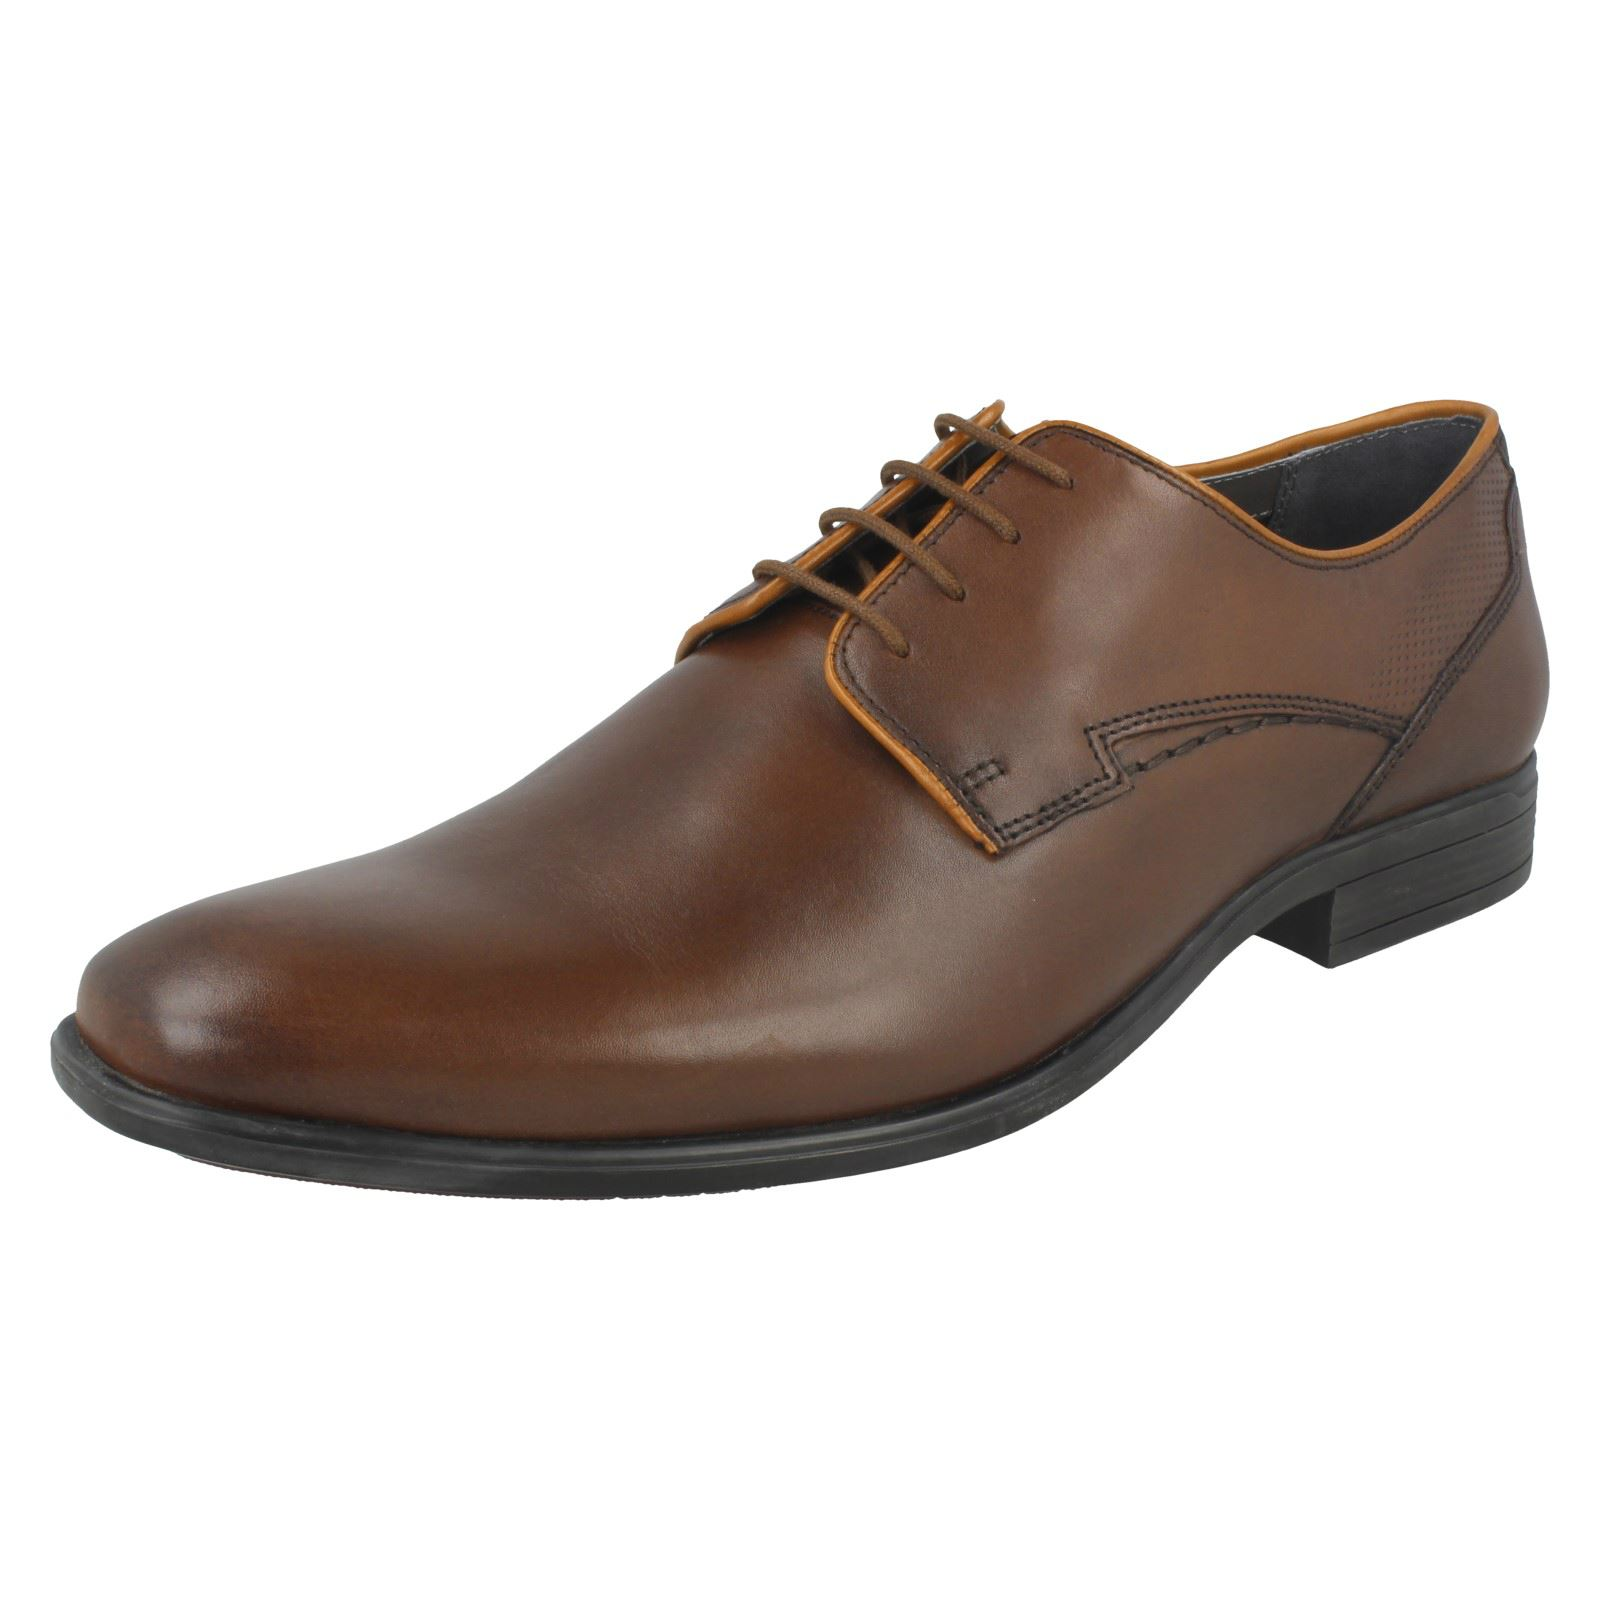 ' Herren Hush Puppies' Smart Smart Smart Formal Schuhes Kane Maddow a57fbc